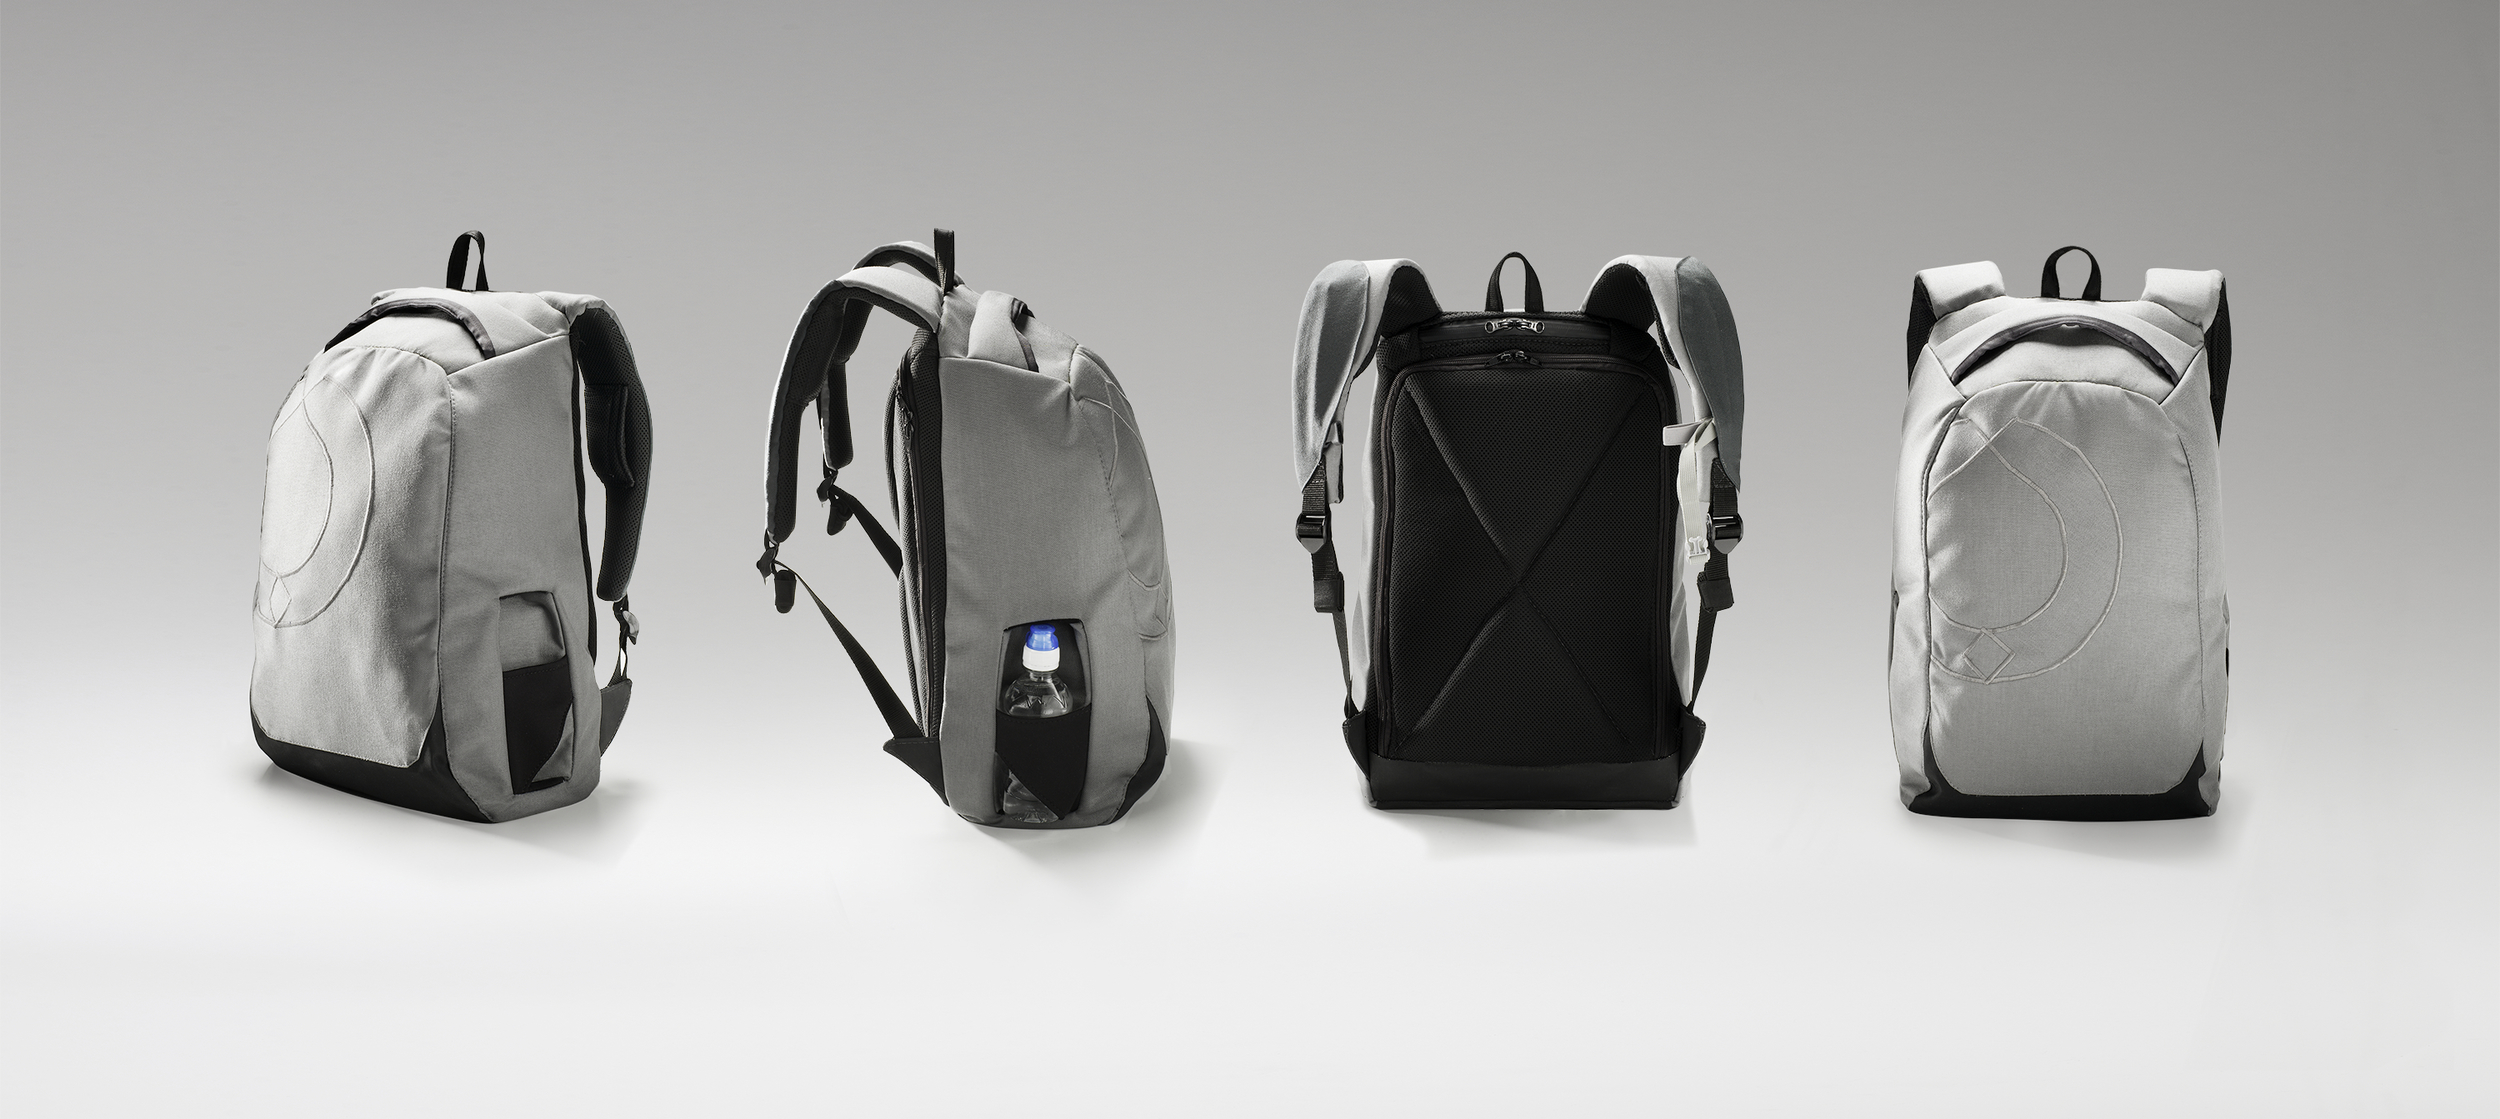 Your rucksack, the Riut way round. Meet the RiutBag prototype!